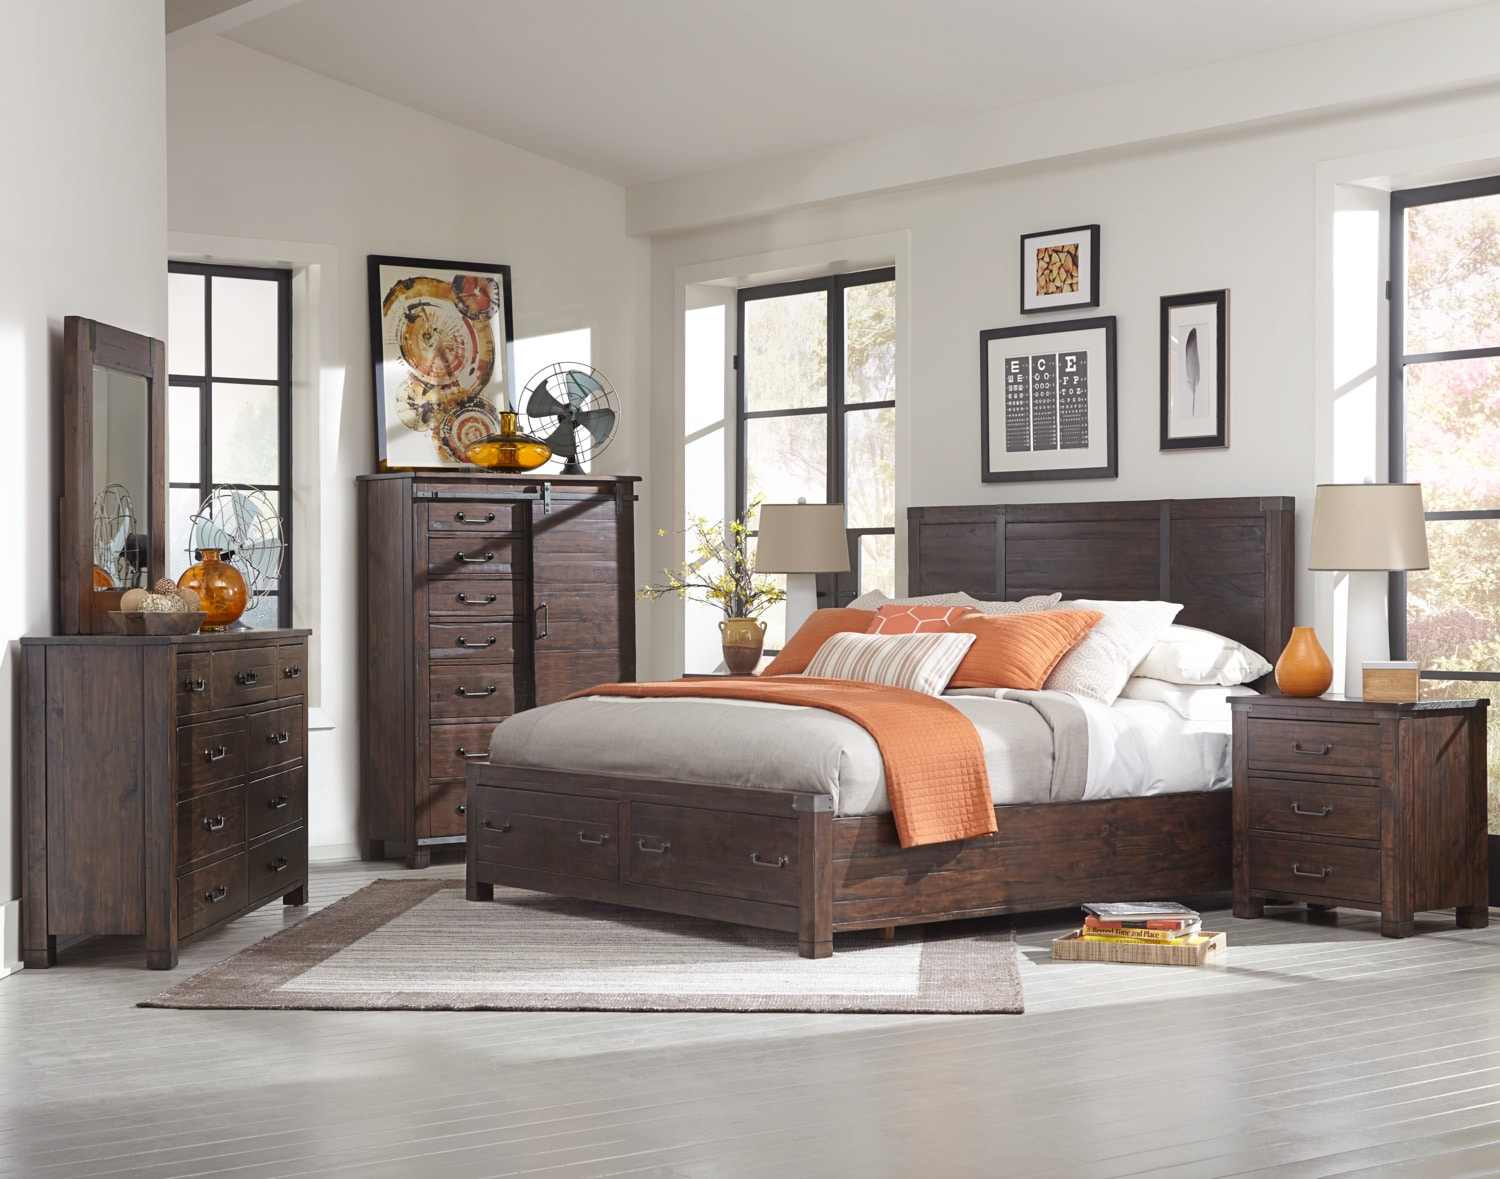 The Pine Hill Collection - Rustic Pine